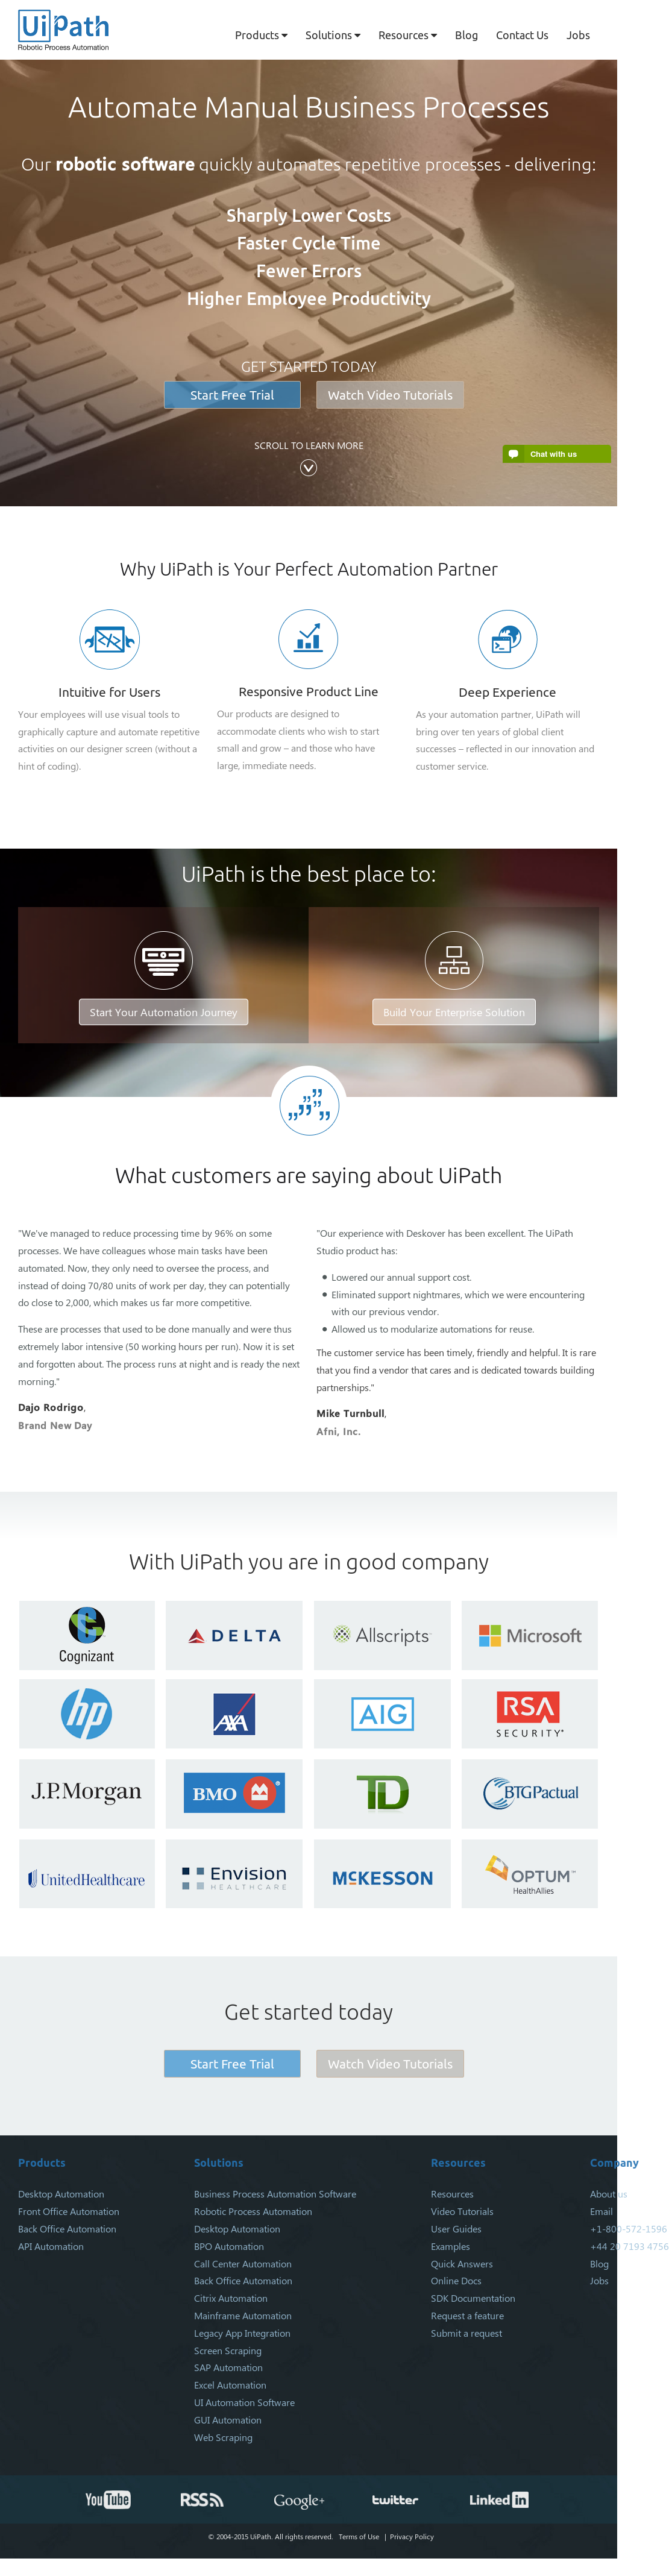 UiPath Competitors, Revenue and Employees - Owler Company Profile